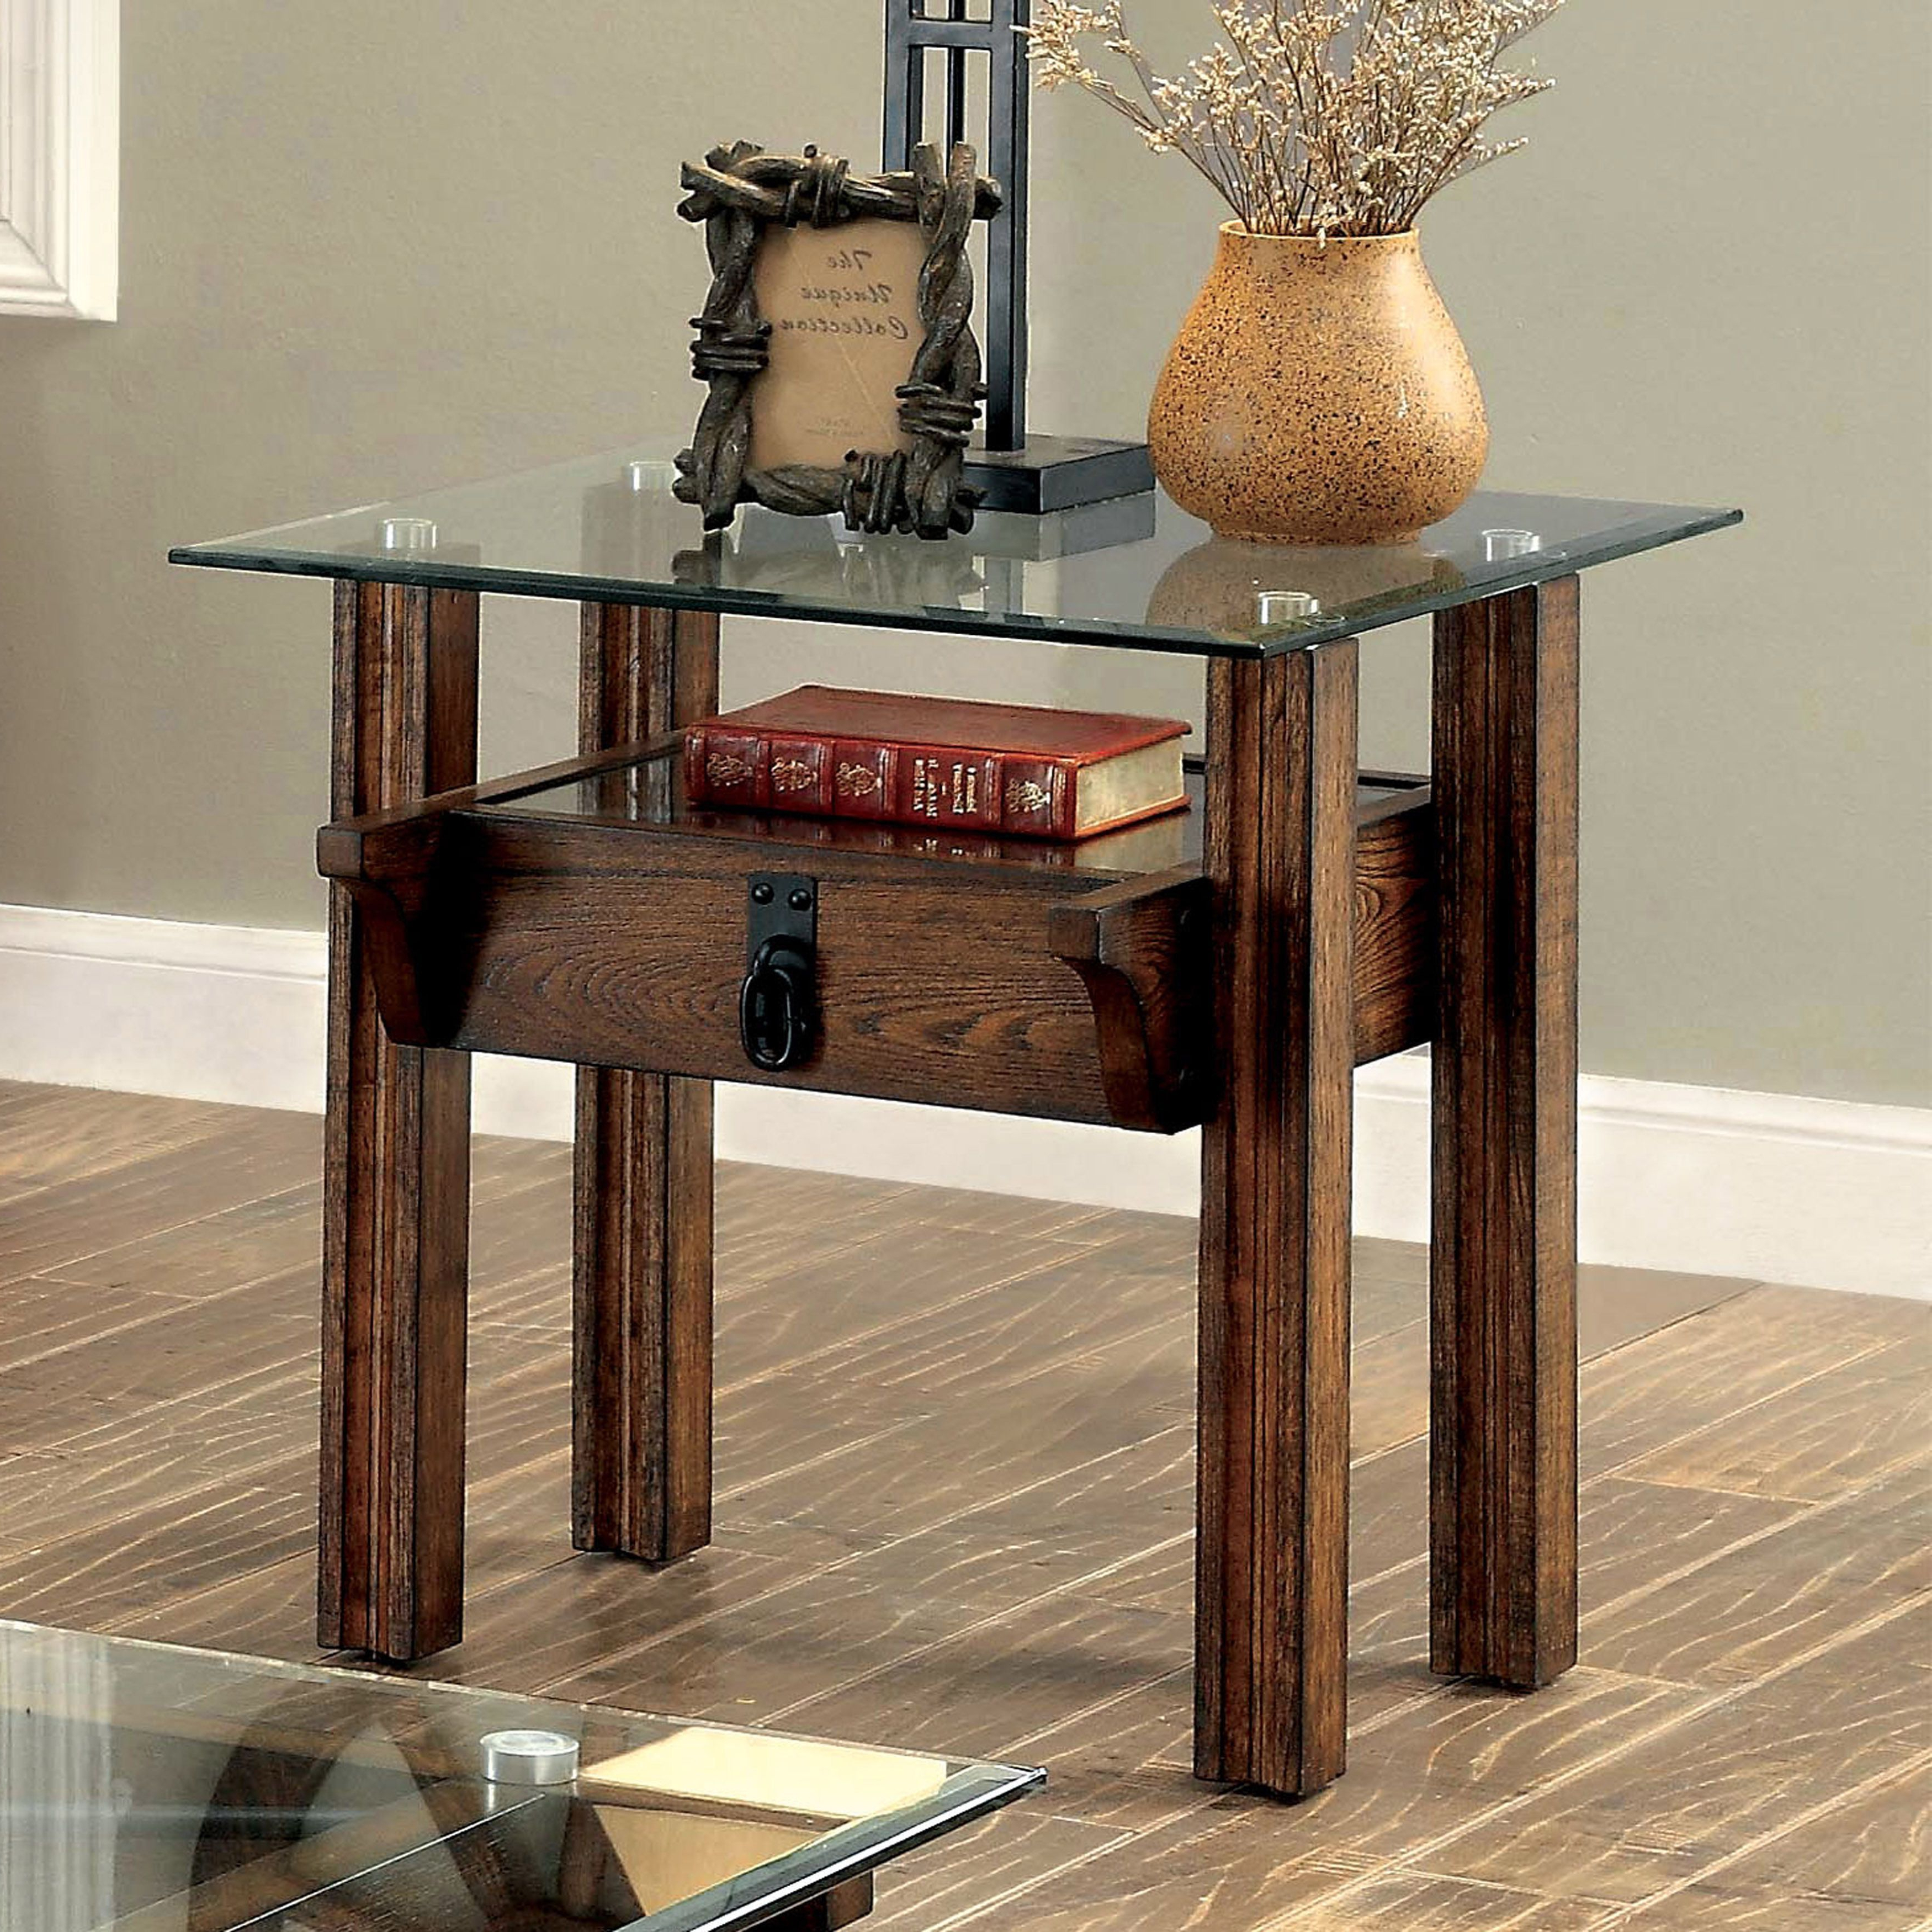 Furniture Of America Charlotte Rustic Glass Top End Table Intended For Newest Furniture Of America Charlotte Weathered Oak Glass Top Coffee Tables (View 11 of 20)